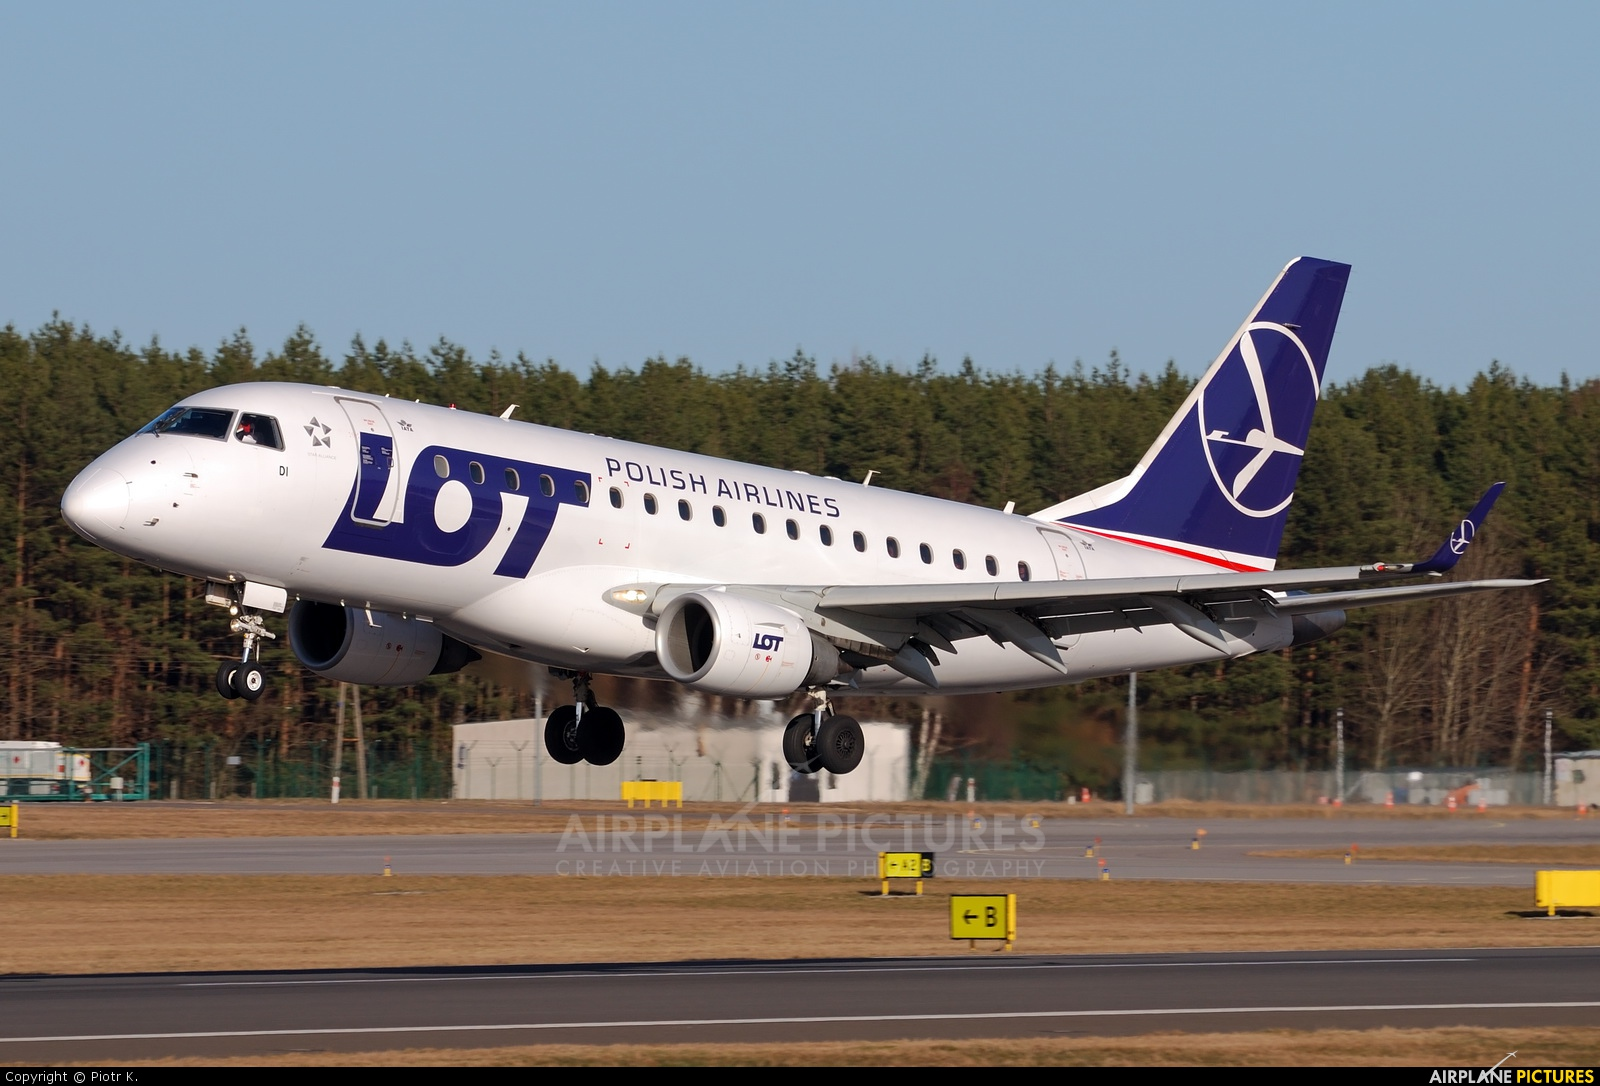 LOT - Polish Airlines SP-LDI aircraft at Gdańsk - Lech Wałęsa